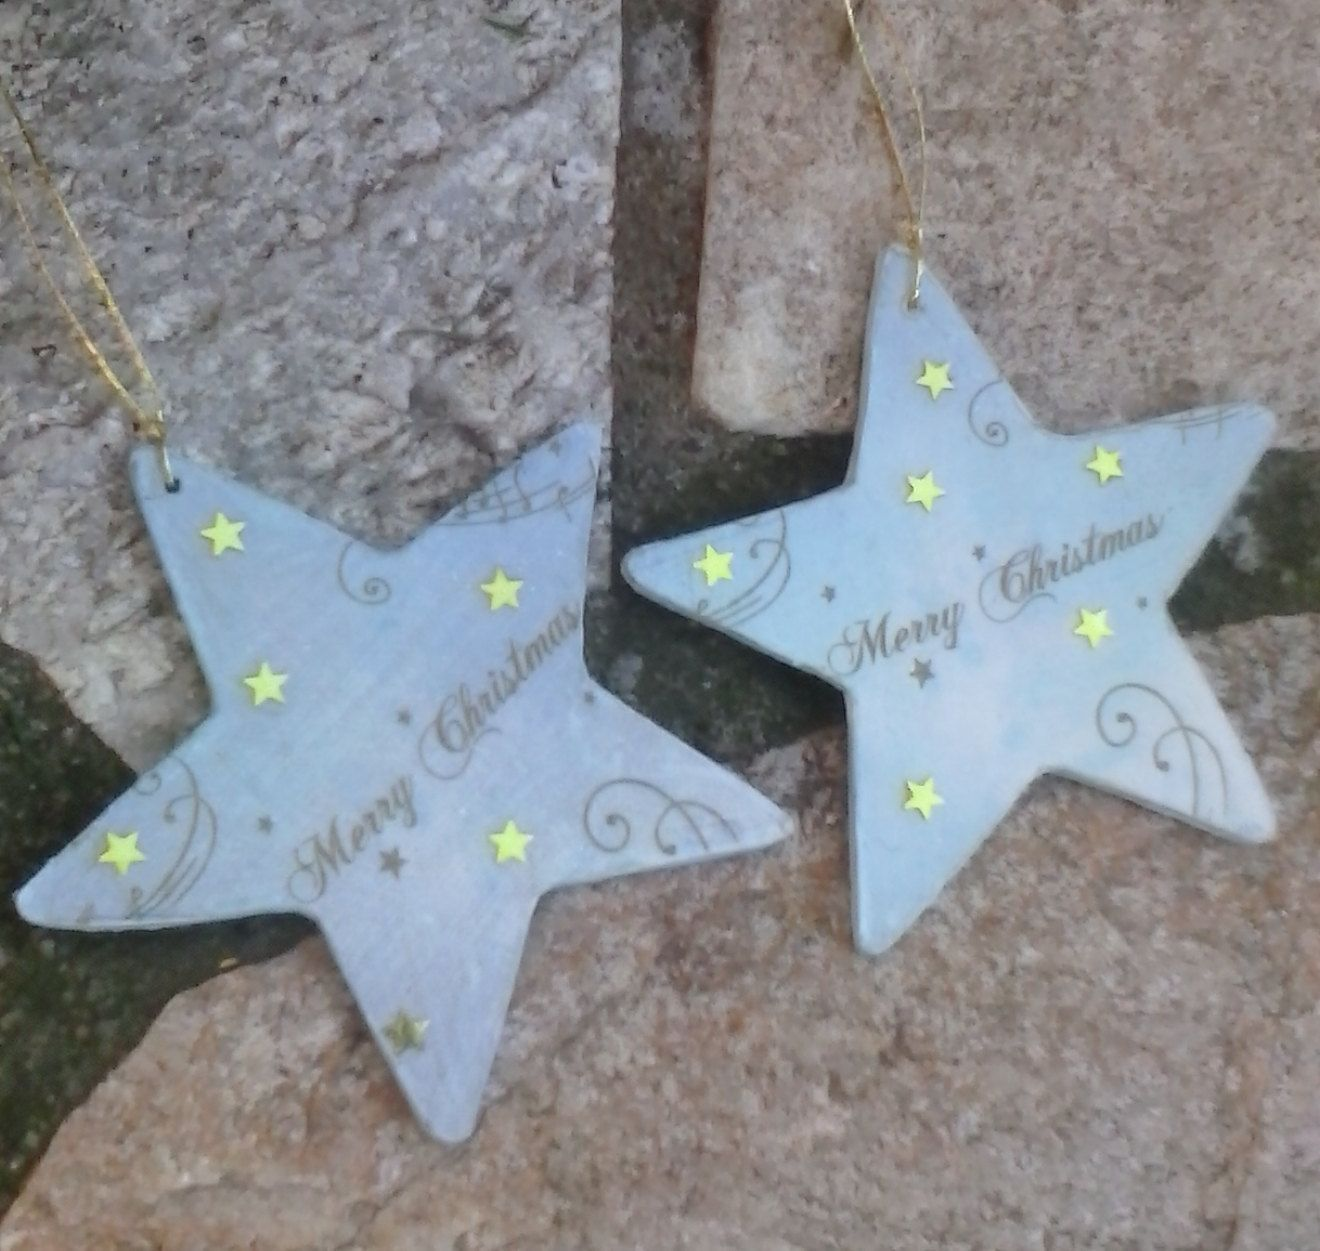 Marry Christmas Wooden Tags, Christmas Tree Star Ornament, Decoupage  Ornaments, Golden Stars By